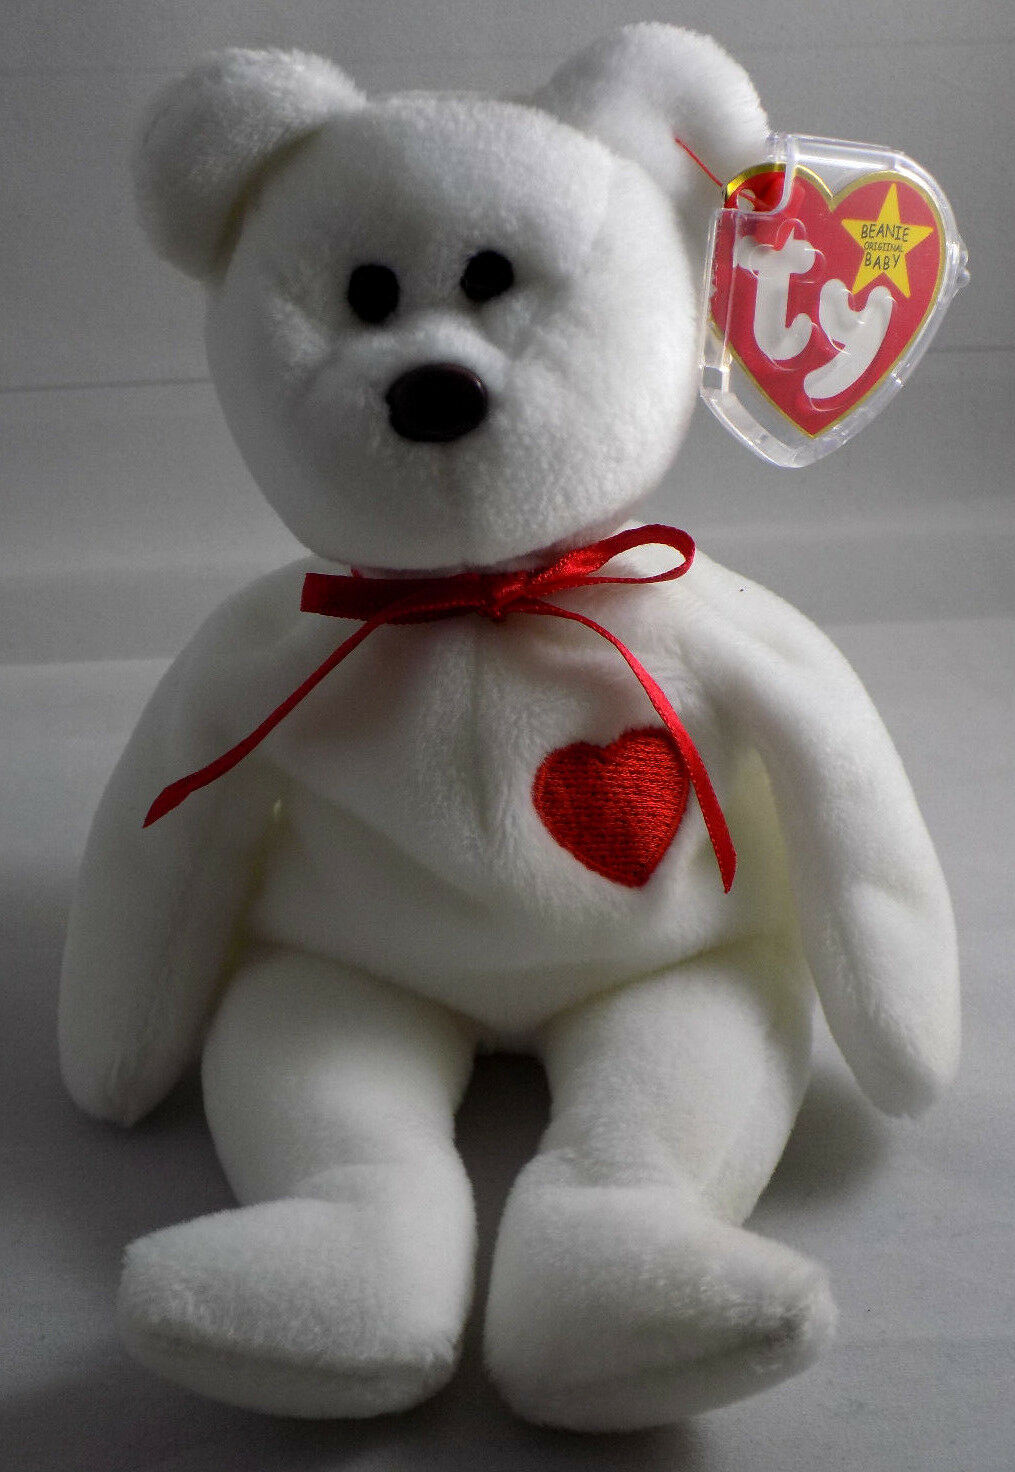 TY Beanie Baby VALENTINO the BEAR Very Rare 1993 with ERRORS & misspelling